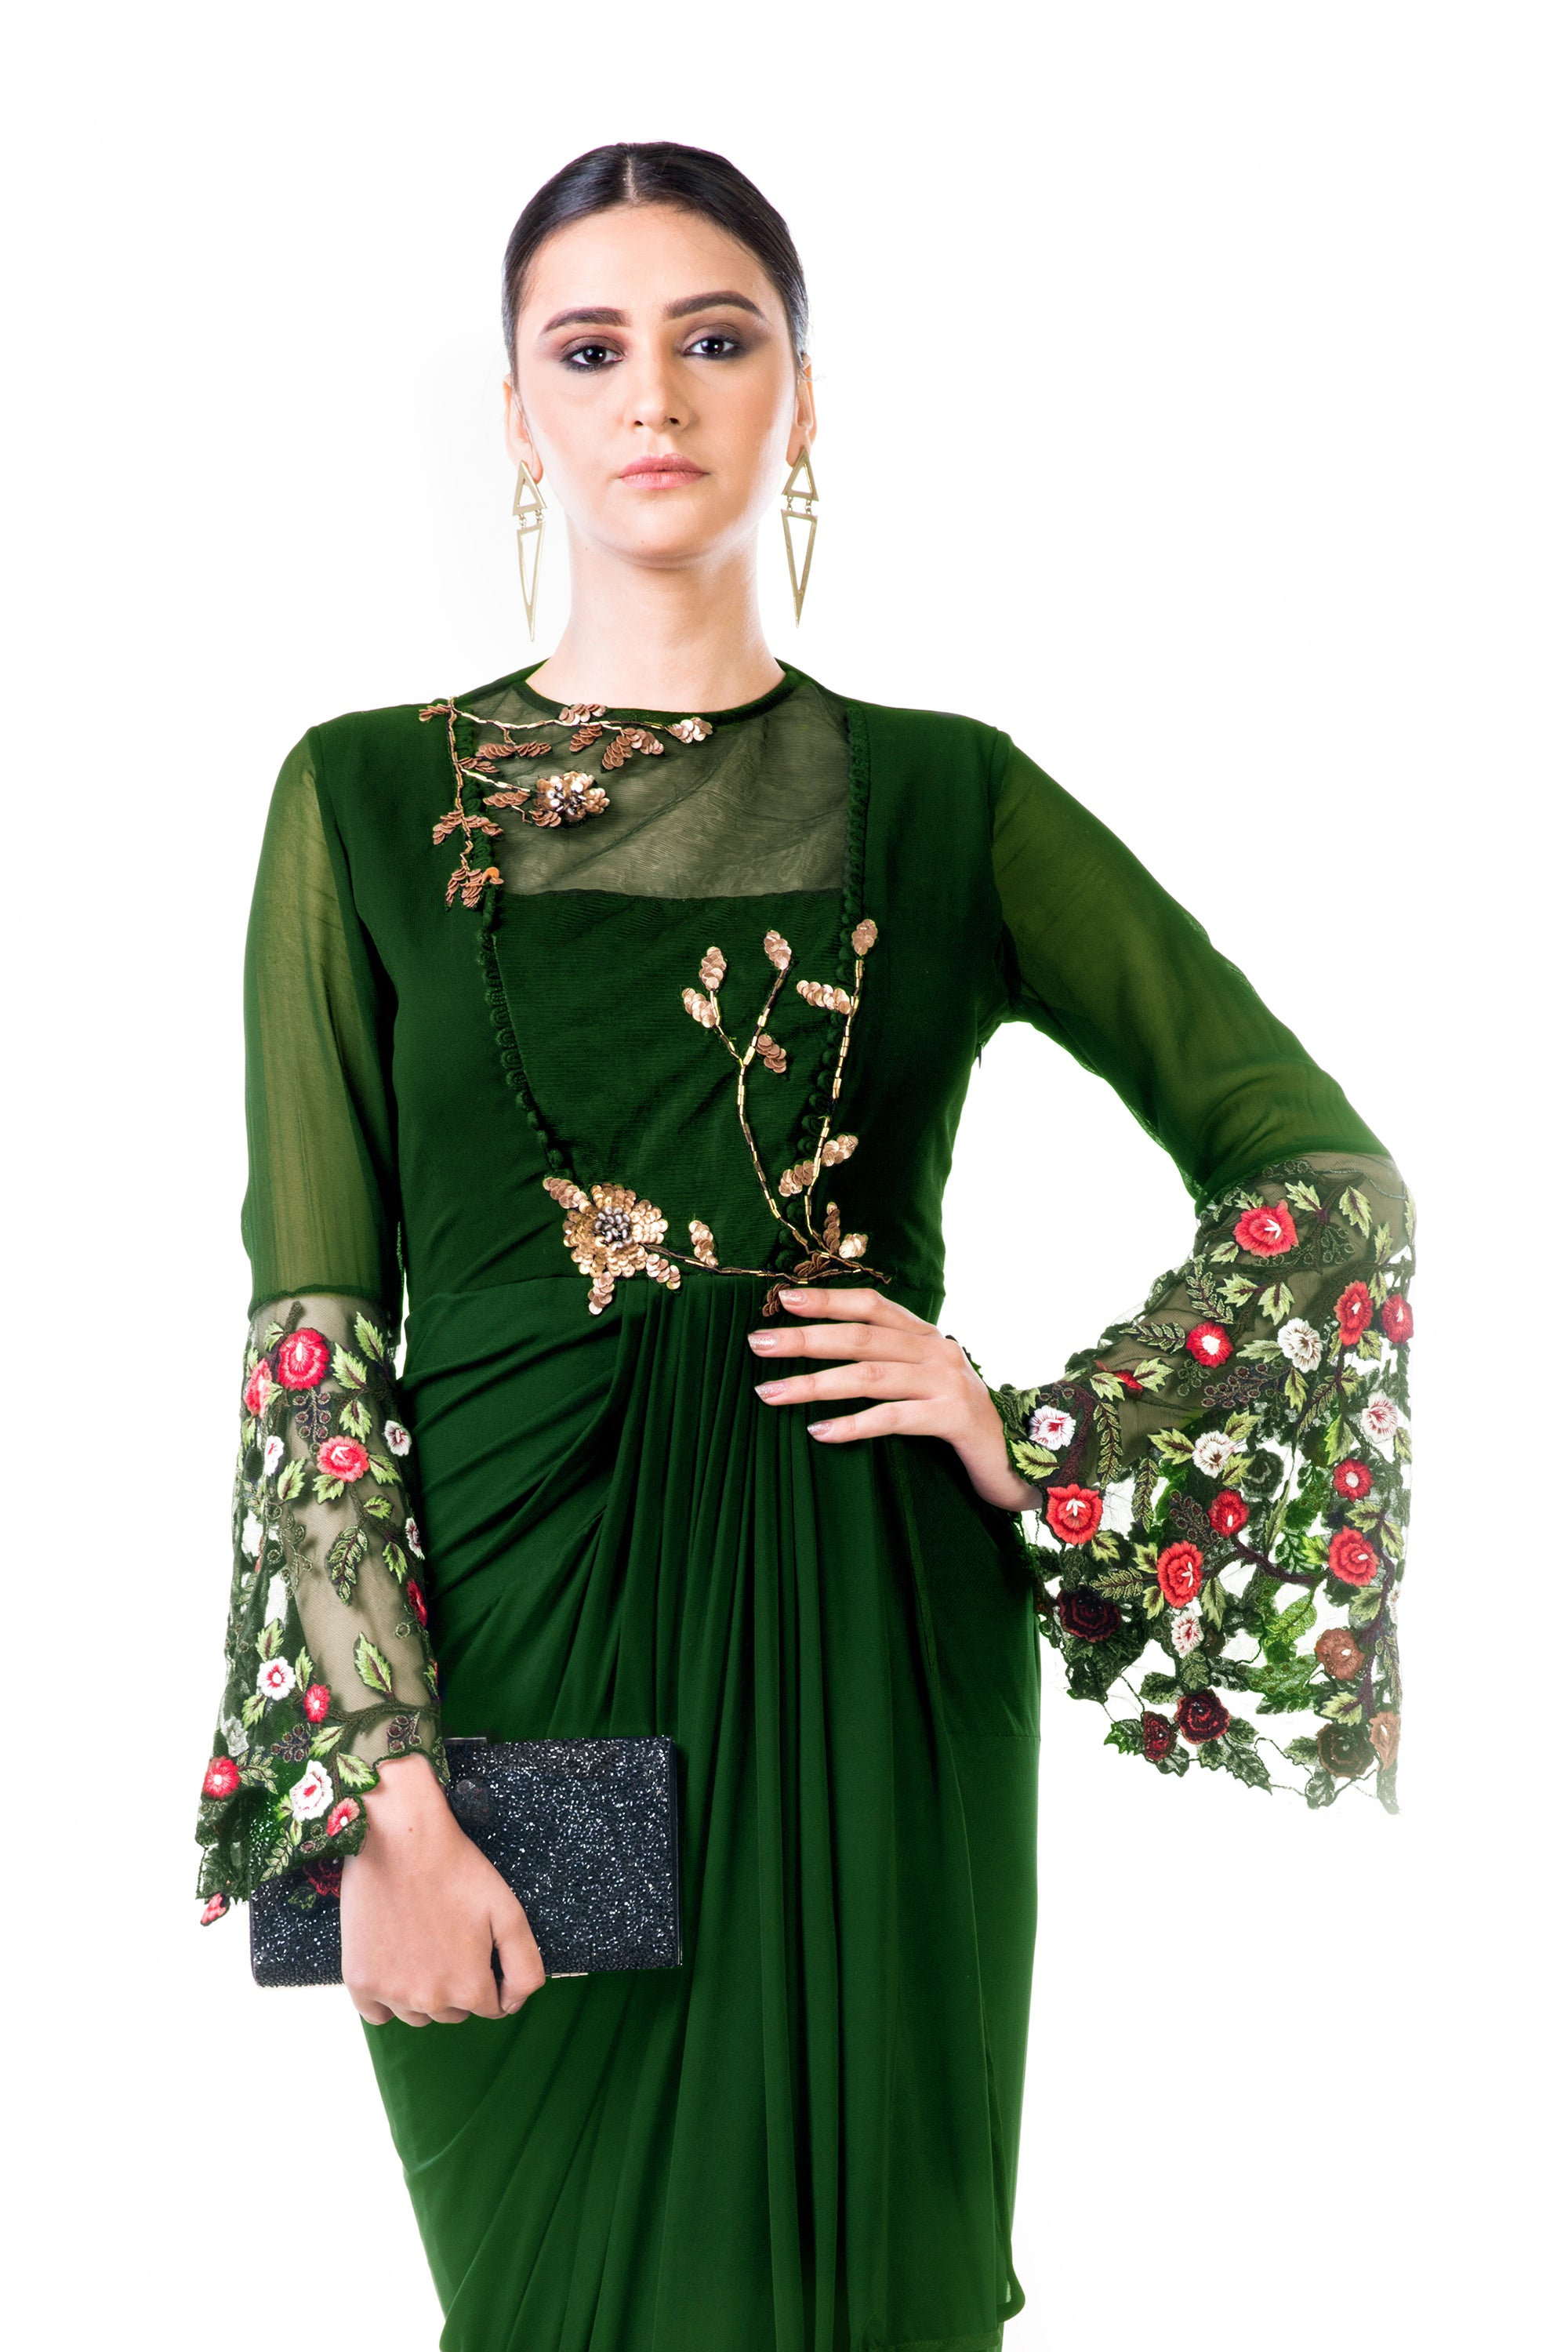 Green Embroidered Bell Sleeves Draped Dress CloseUp